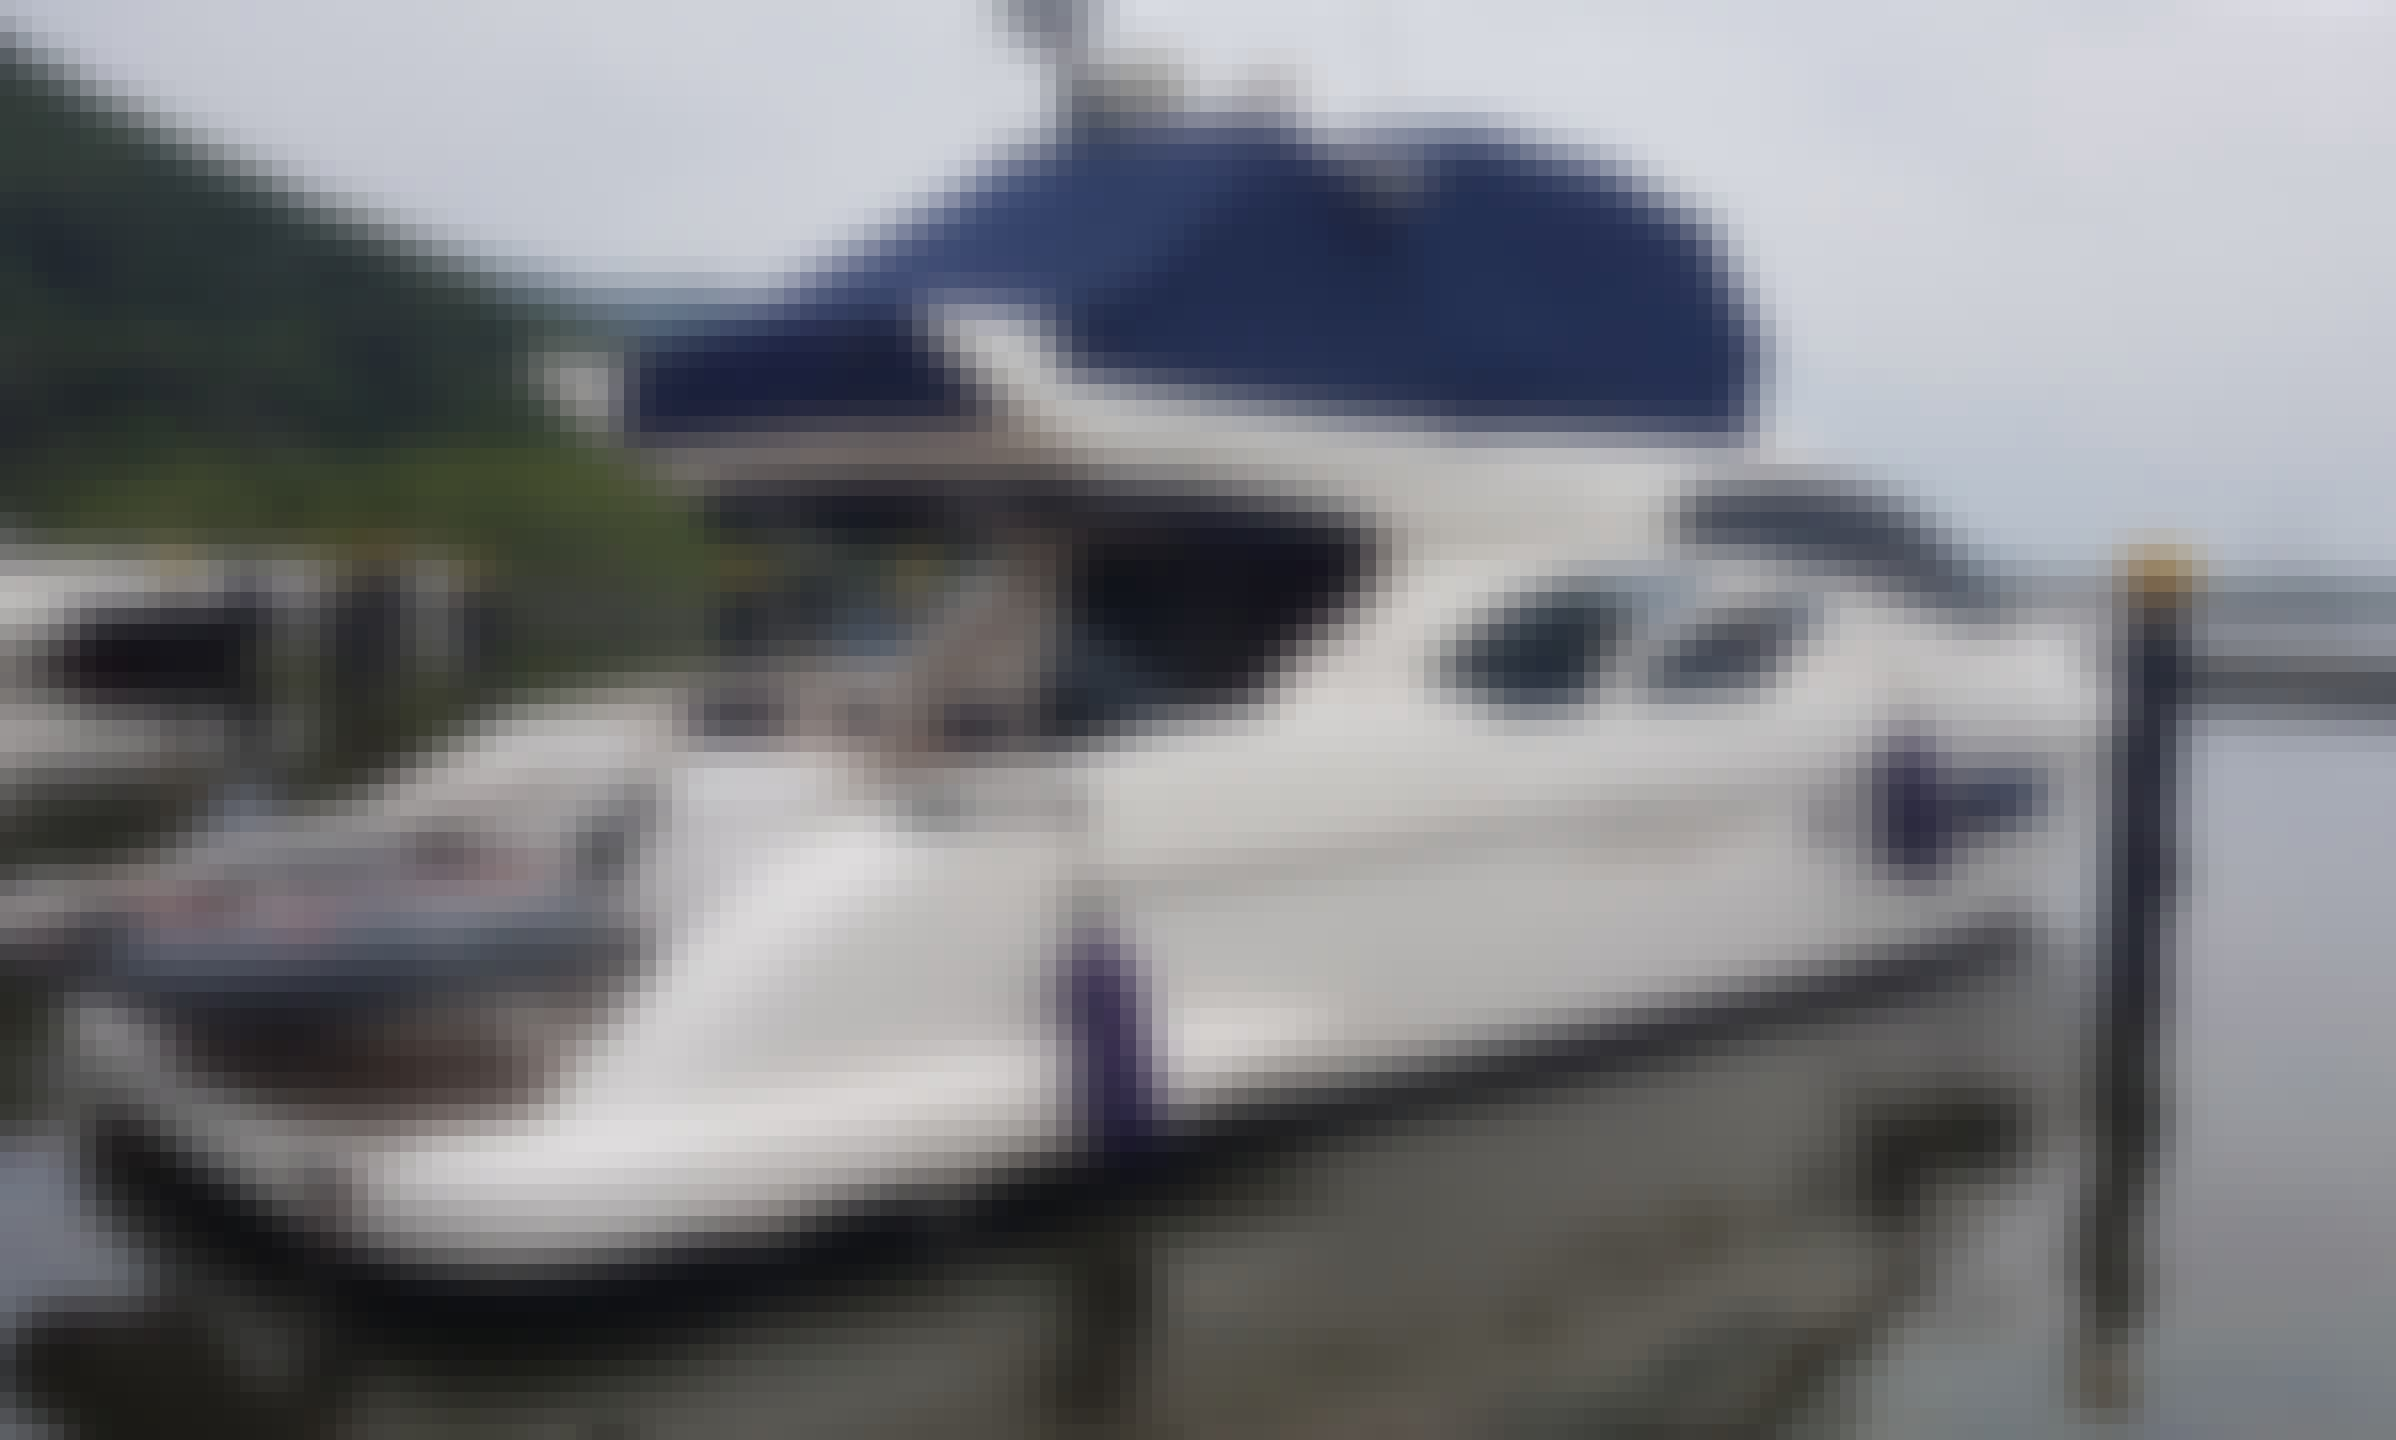 Rent this 17 person yacht in Guarujá